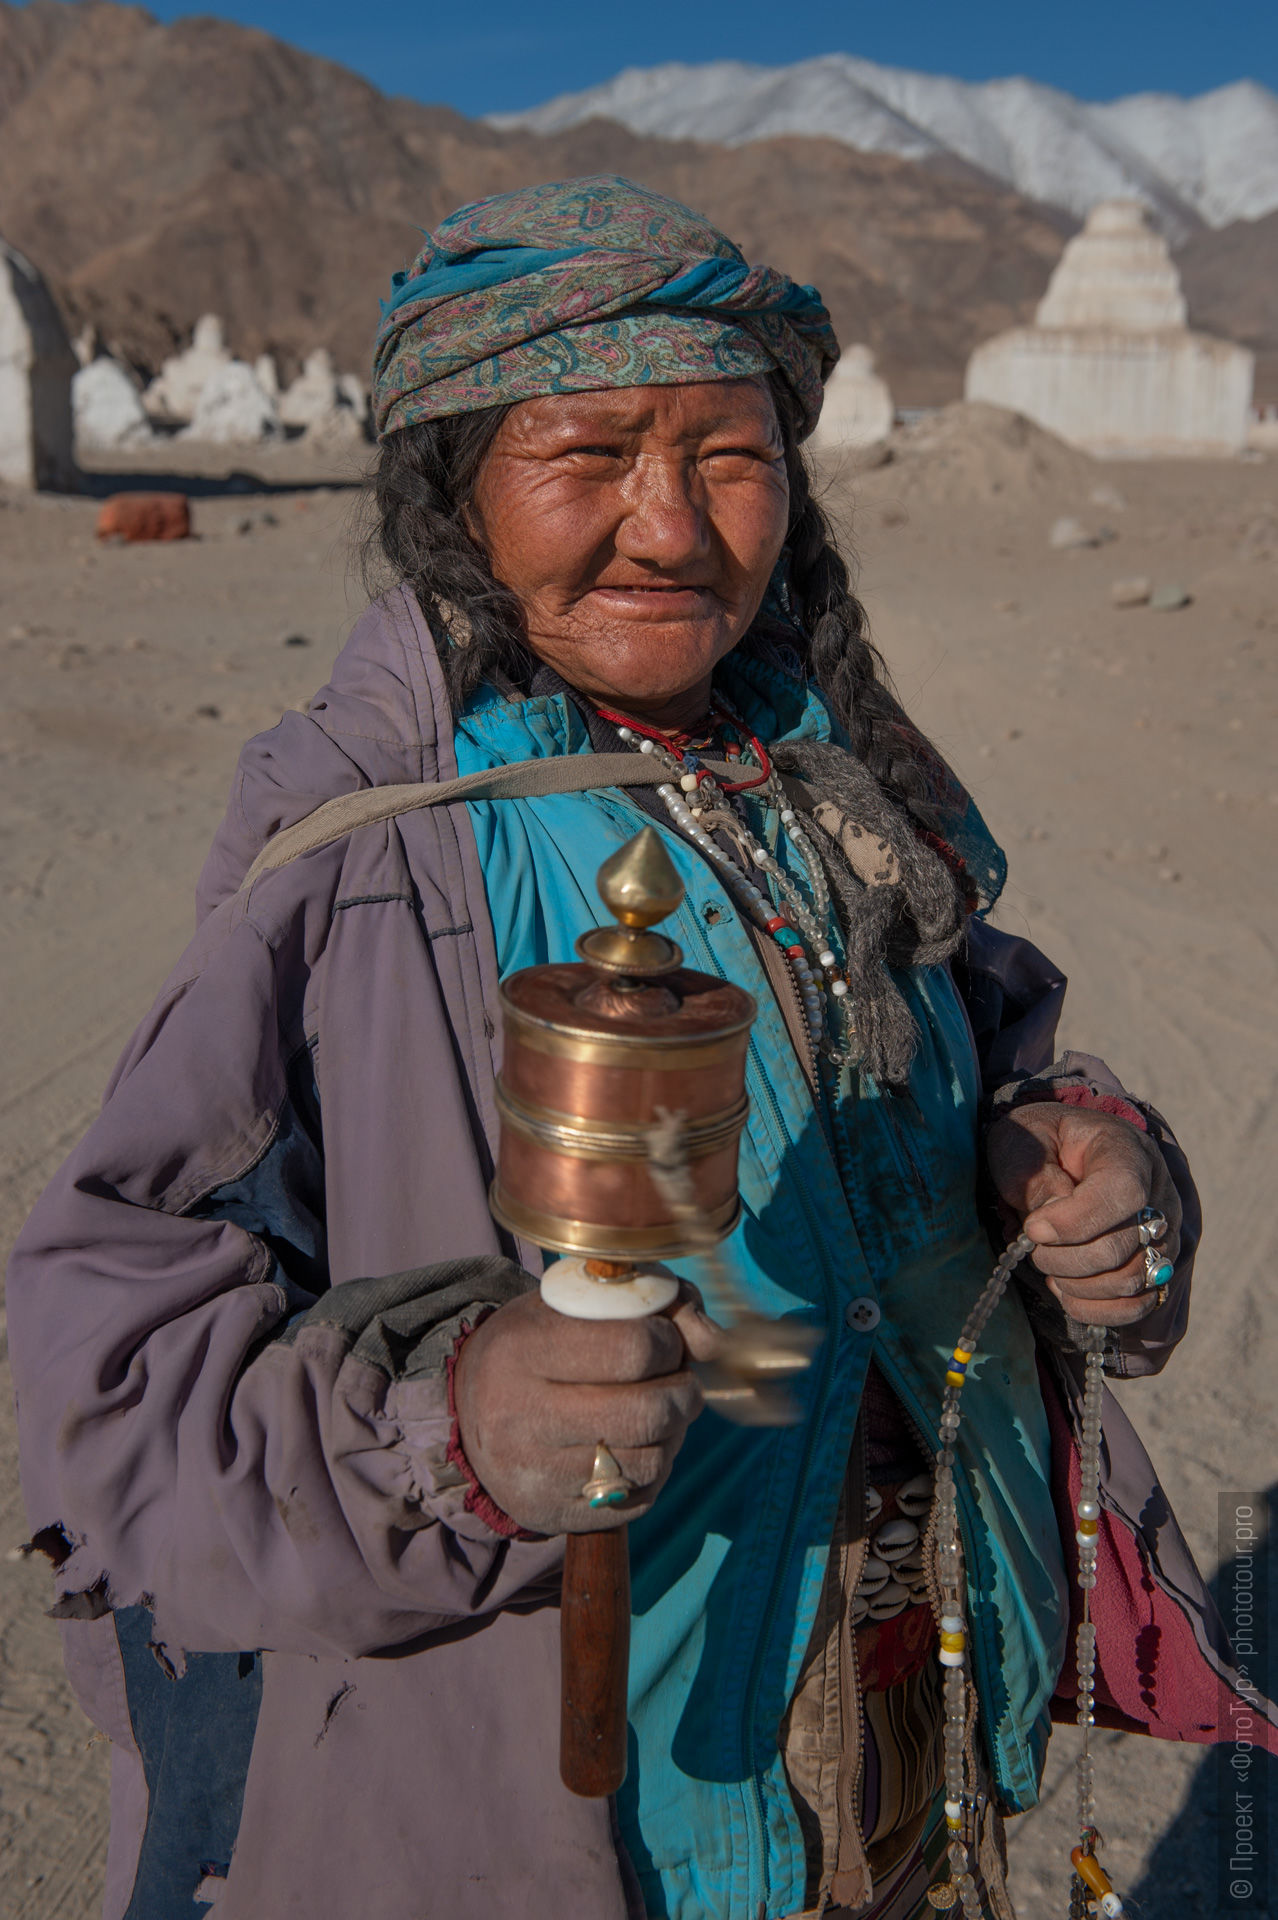 Tibetan grandmother during a retreat strike. Photo tour to Tibet for the Winter Mysteries in Ladakh, Stok and Matho monasteries, 01.03. - 03/10/2020